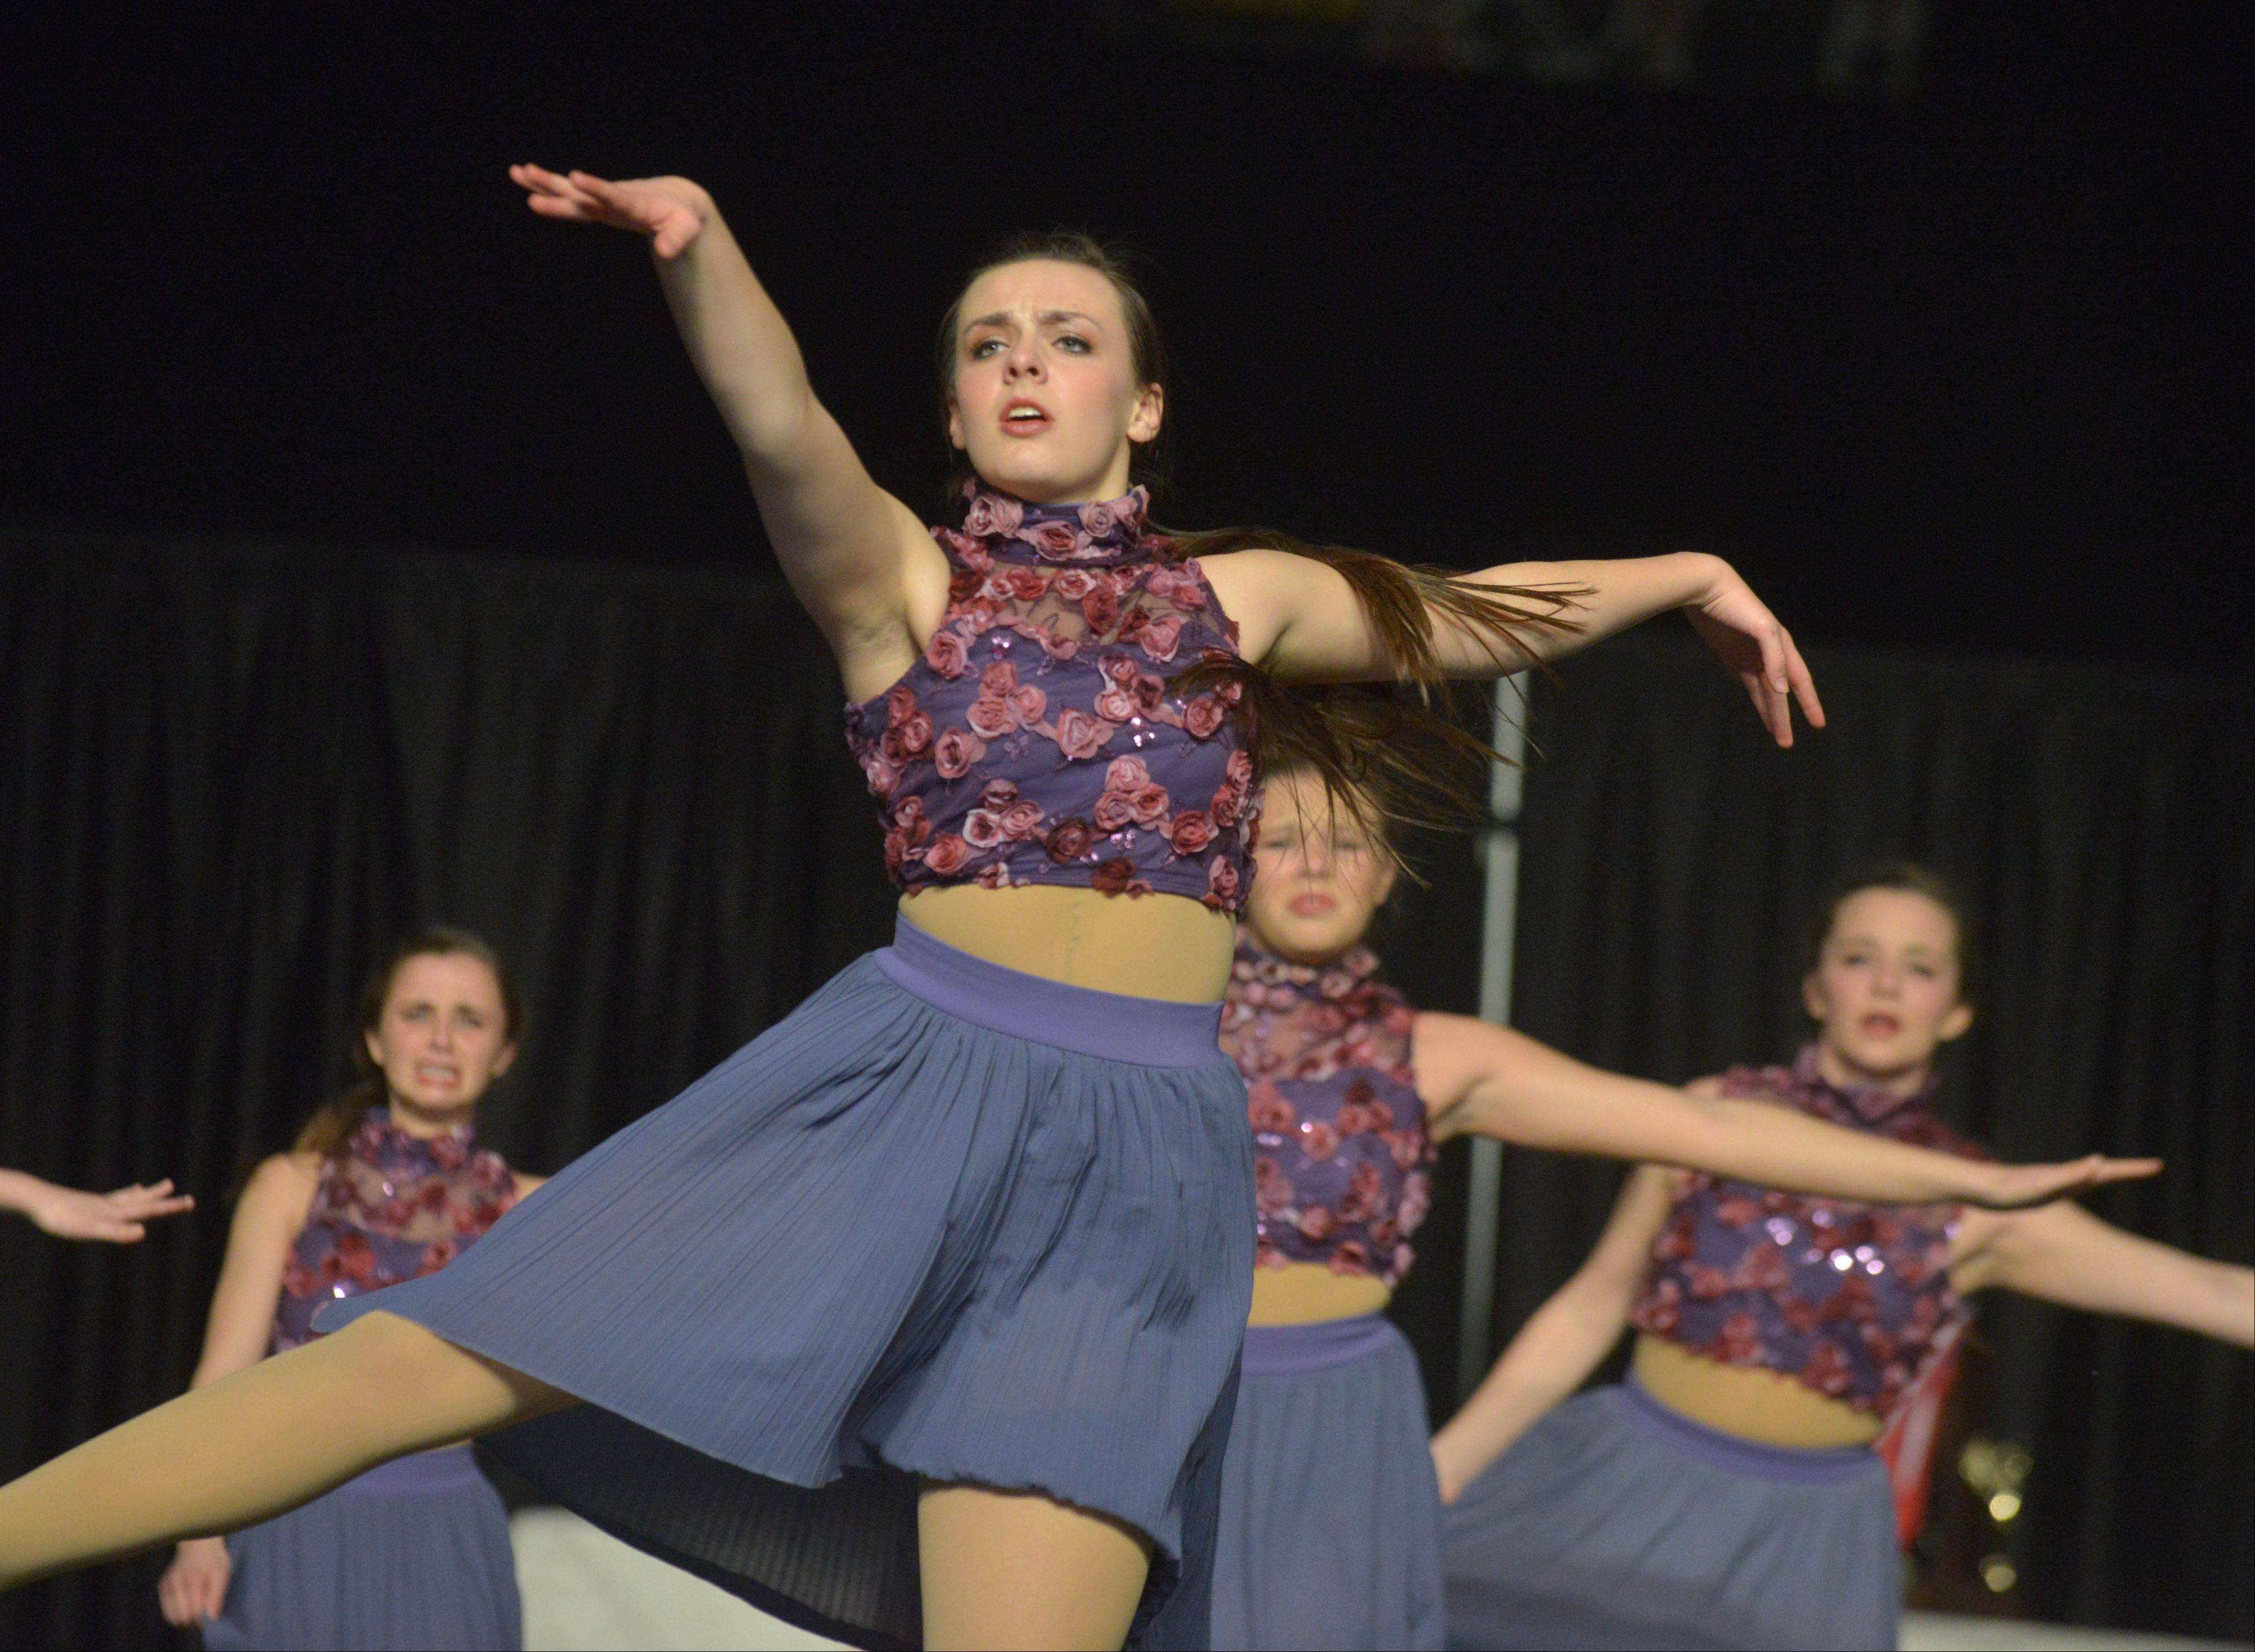 The Saint Charles East High School dance team took part in the Competitive Dance preliminary round Friday at U.S. Cellular Coliseum in Bloomington.